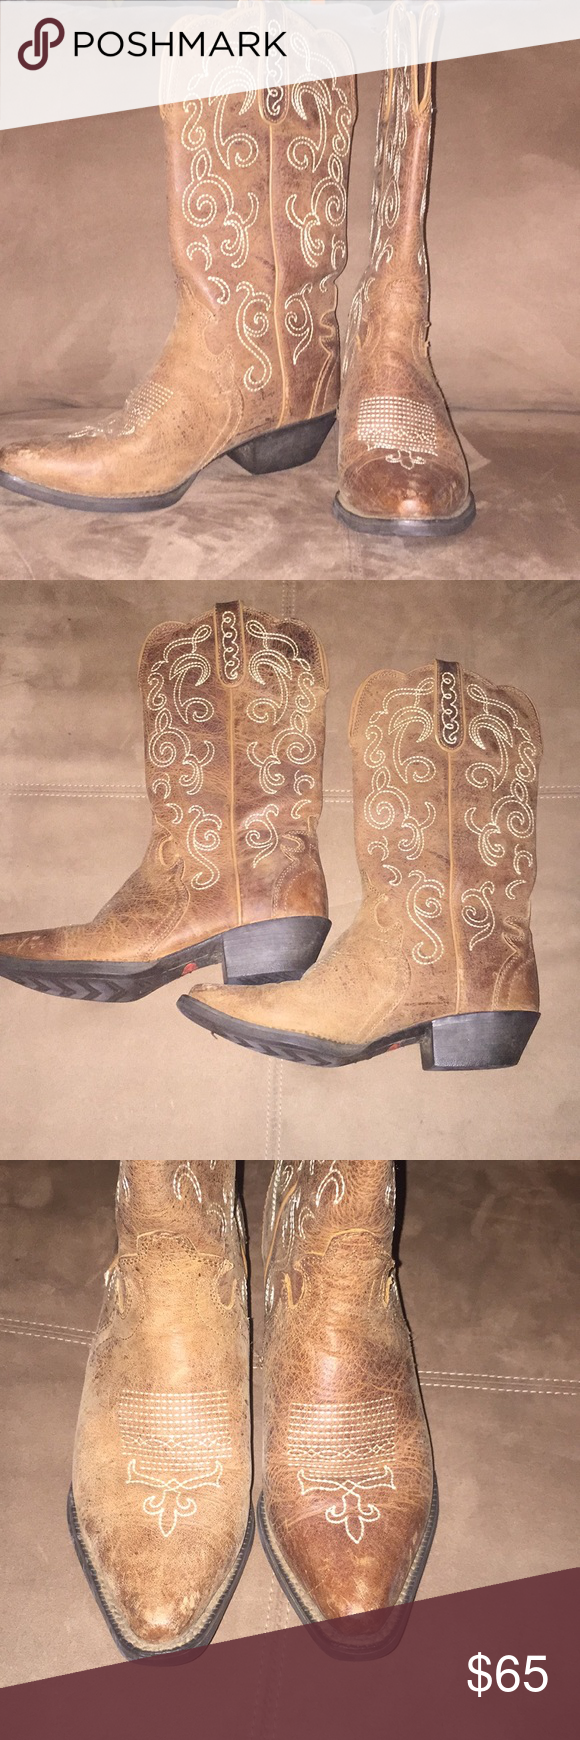 Women's Snip Toe Justin's Boots Awesome—like new pair of